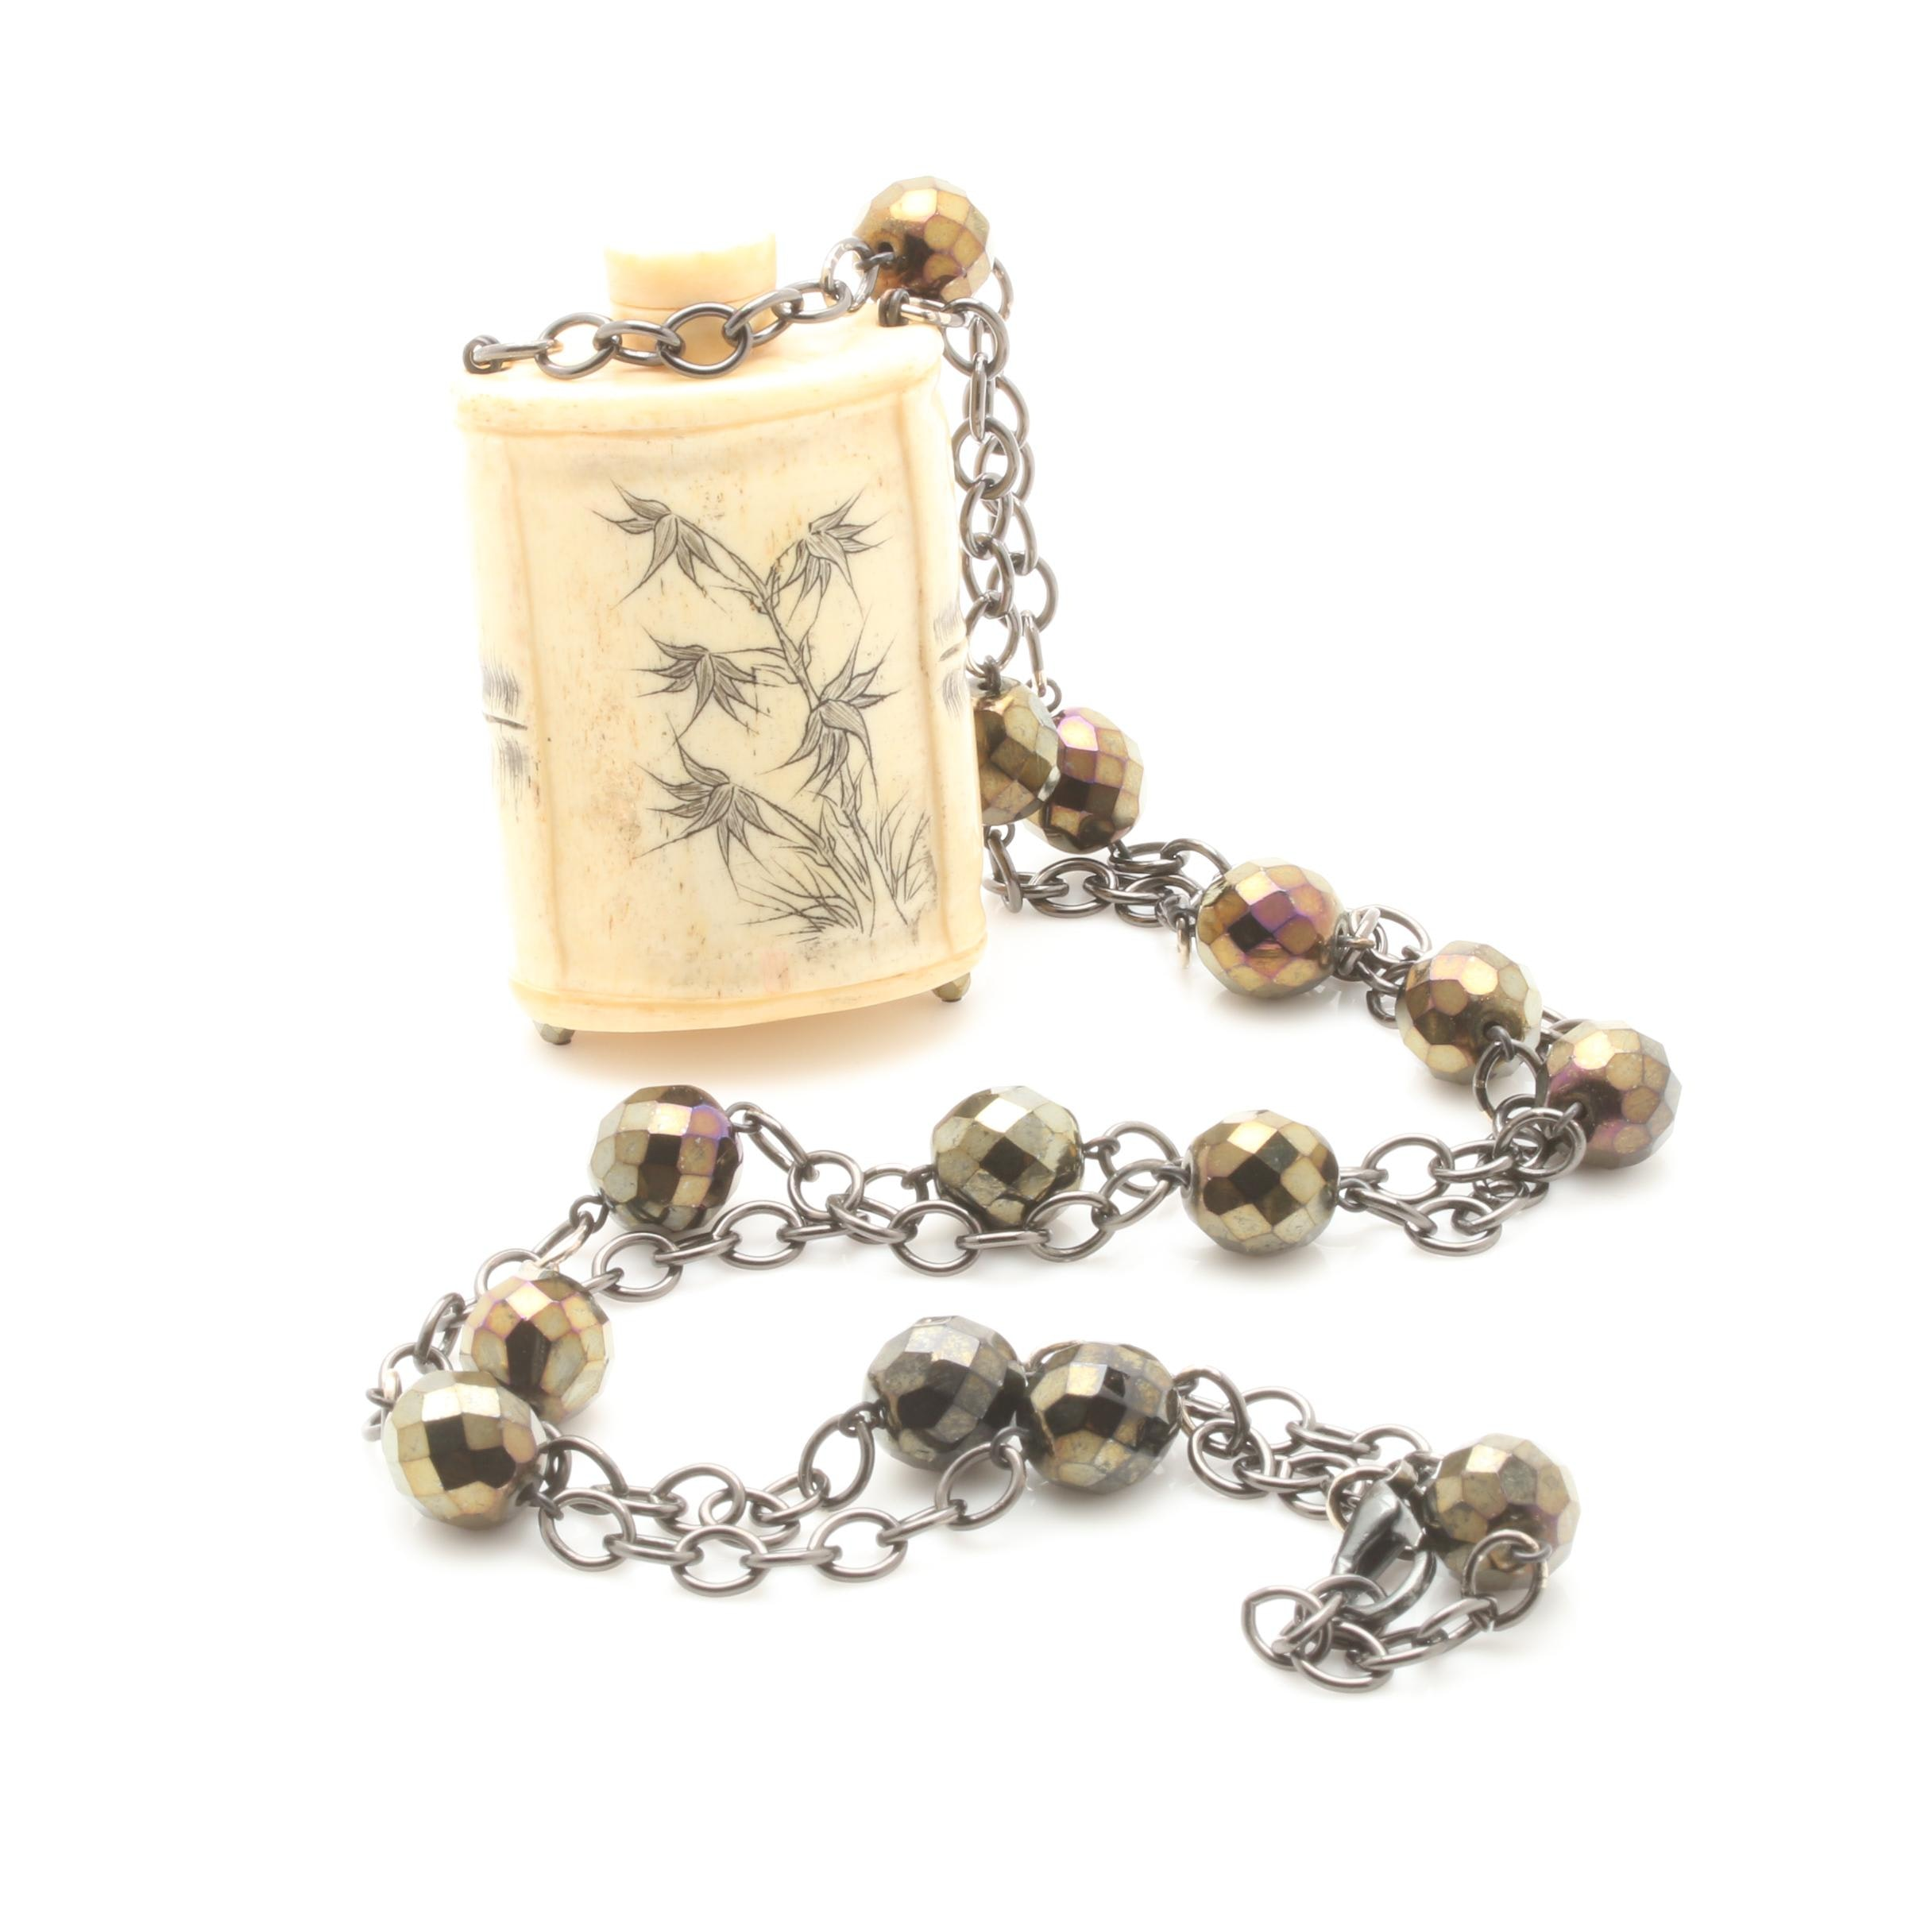 Bone and Glass Snuff Bottle Pendant Necklace